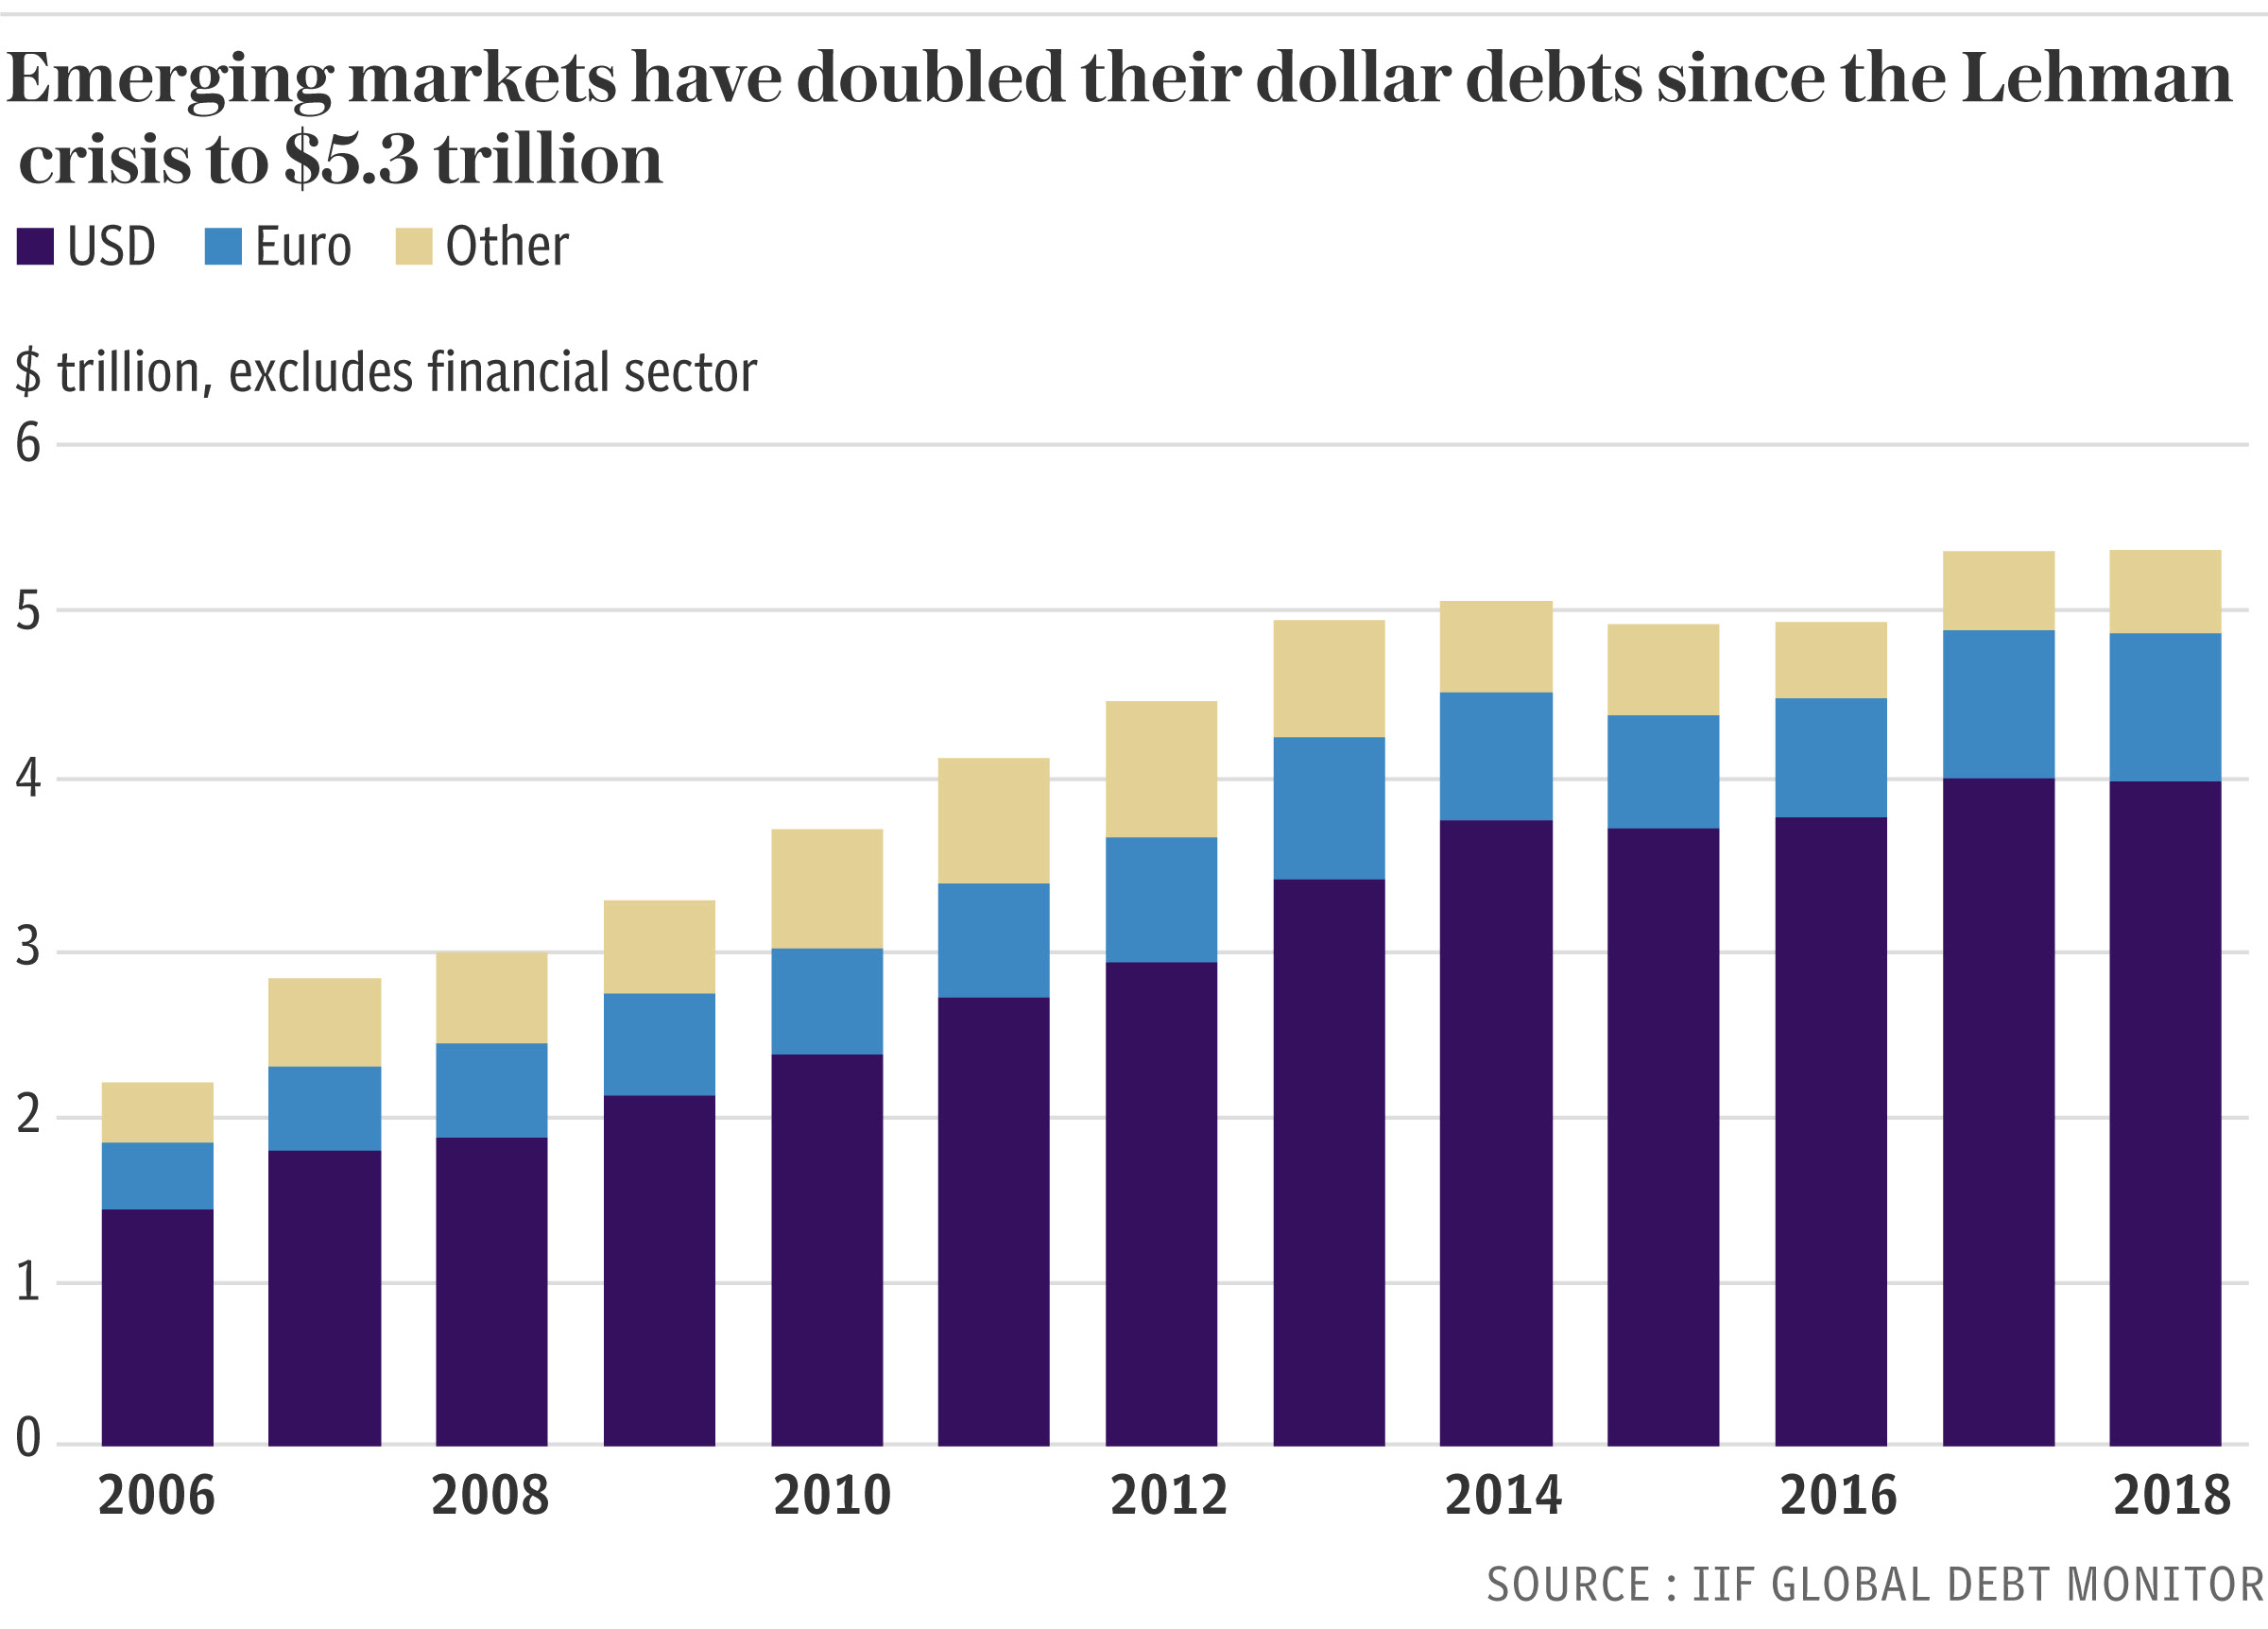 Graph of the dollar debts of emerging markets